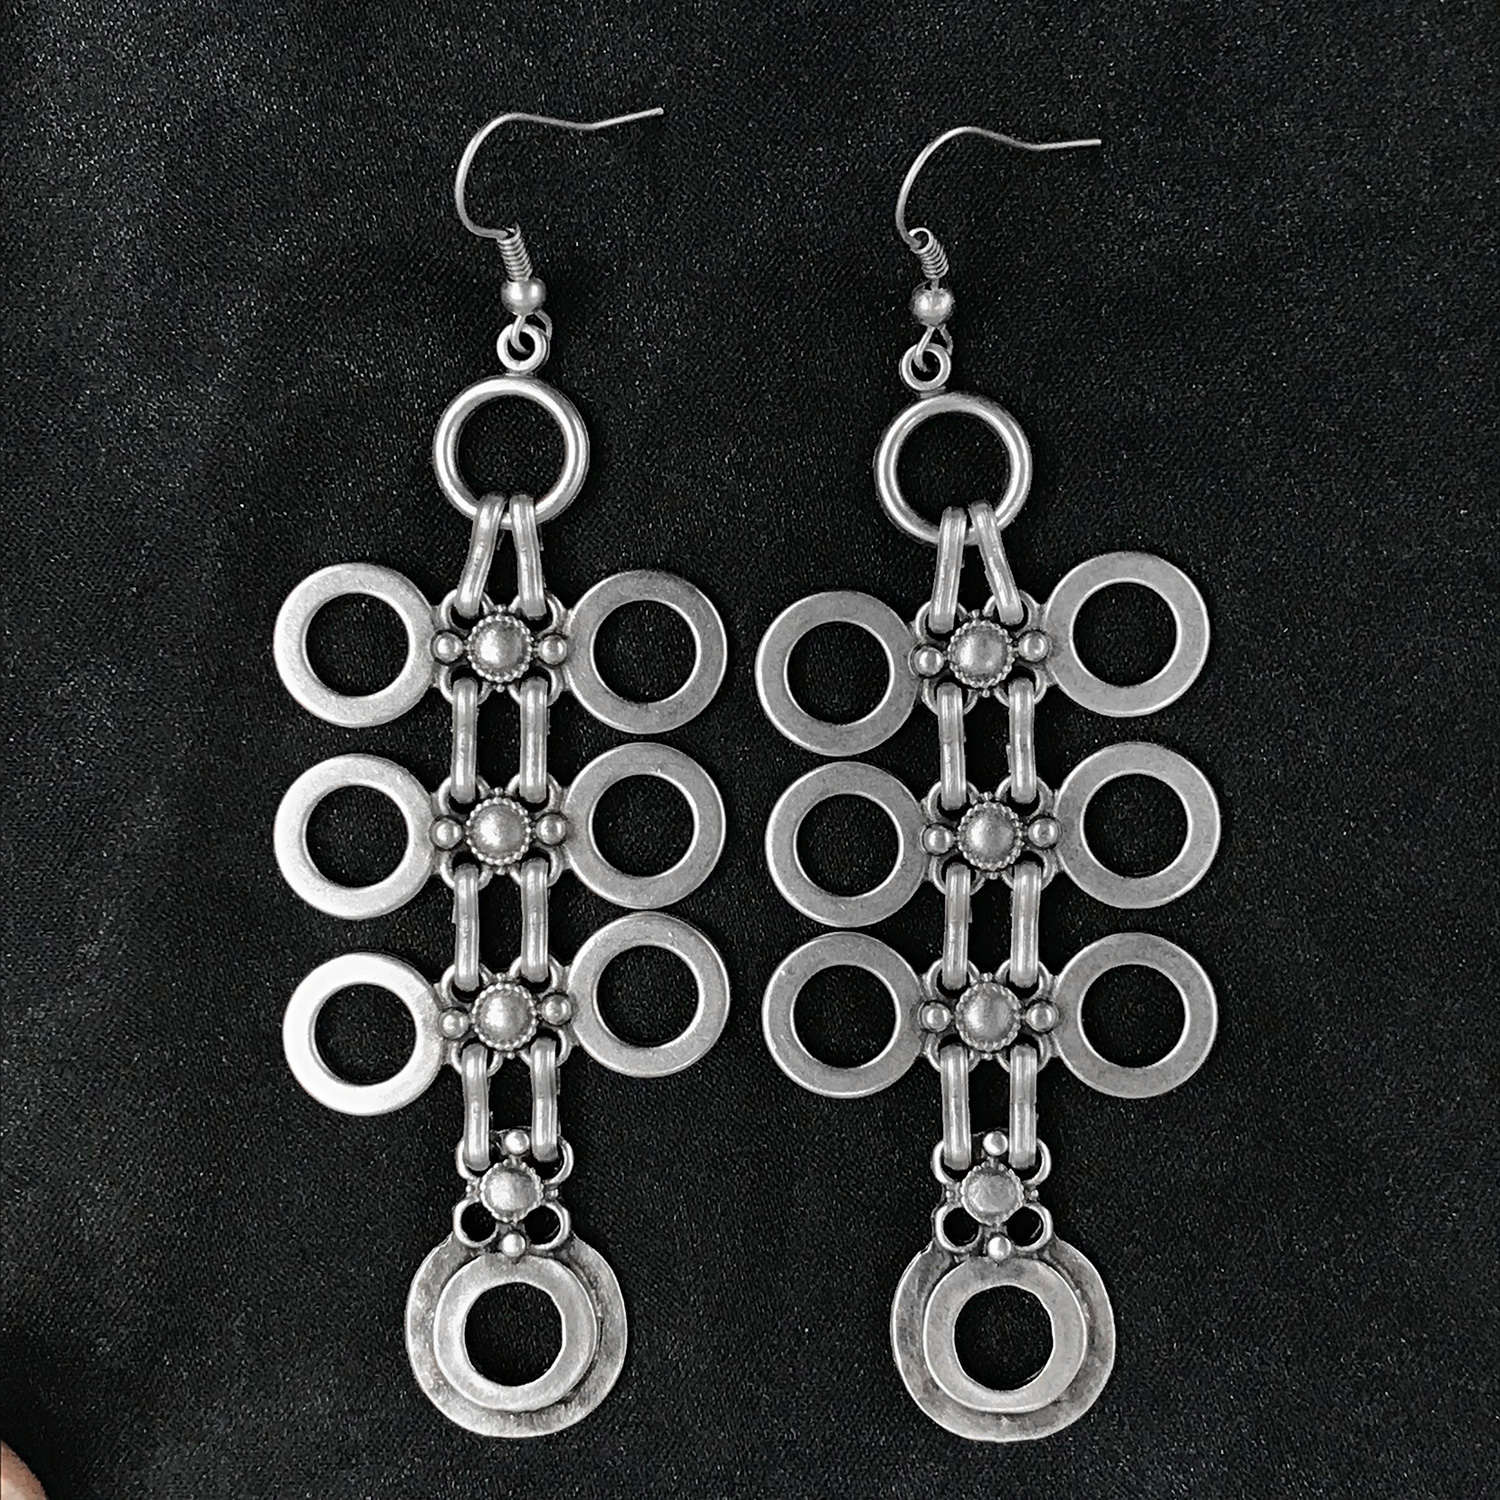 EARRINGS 4513